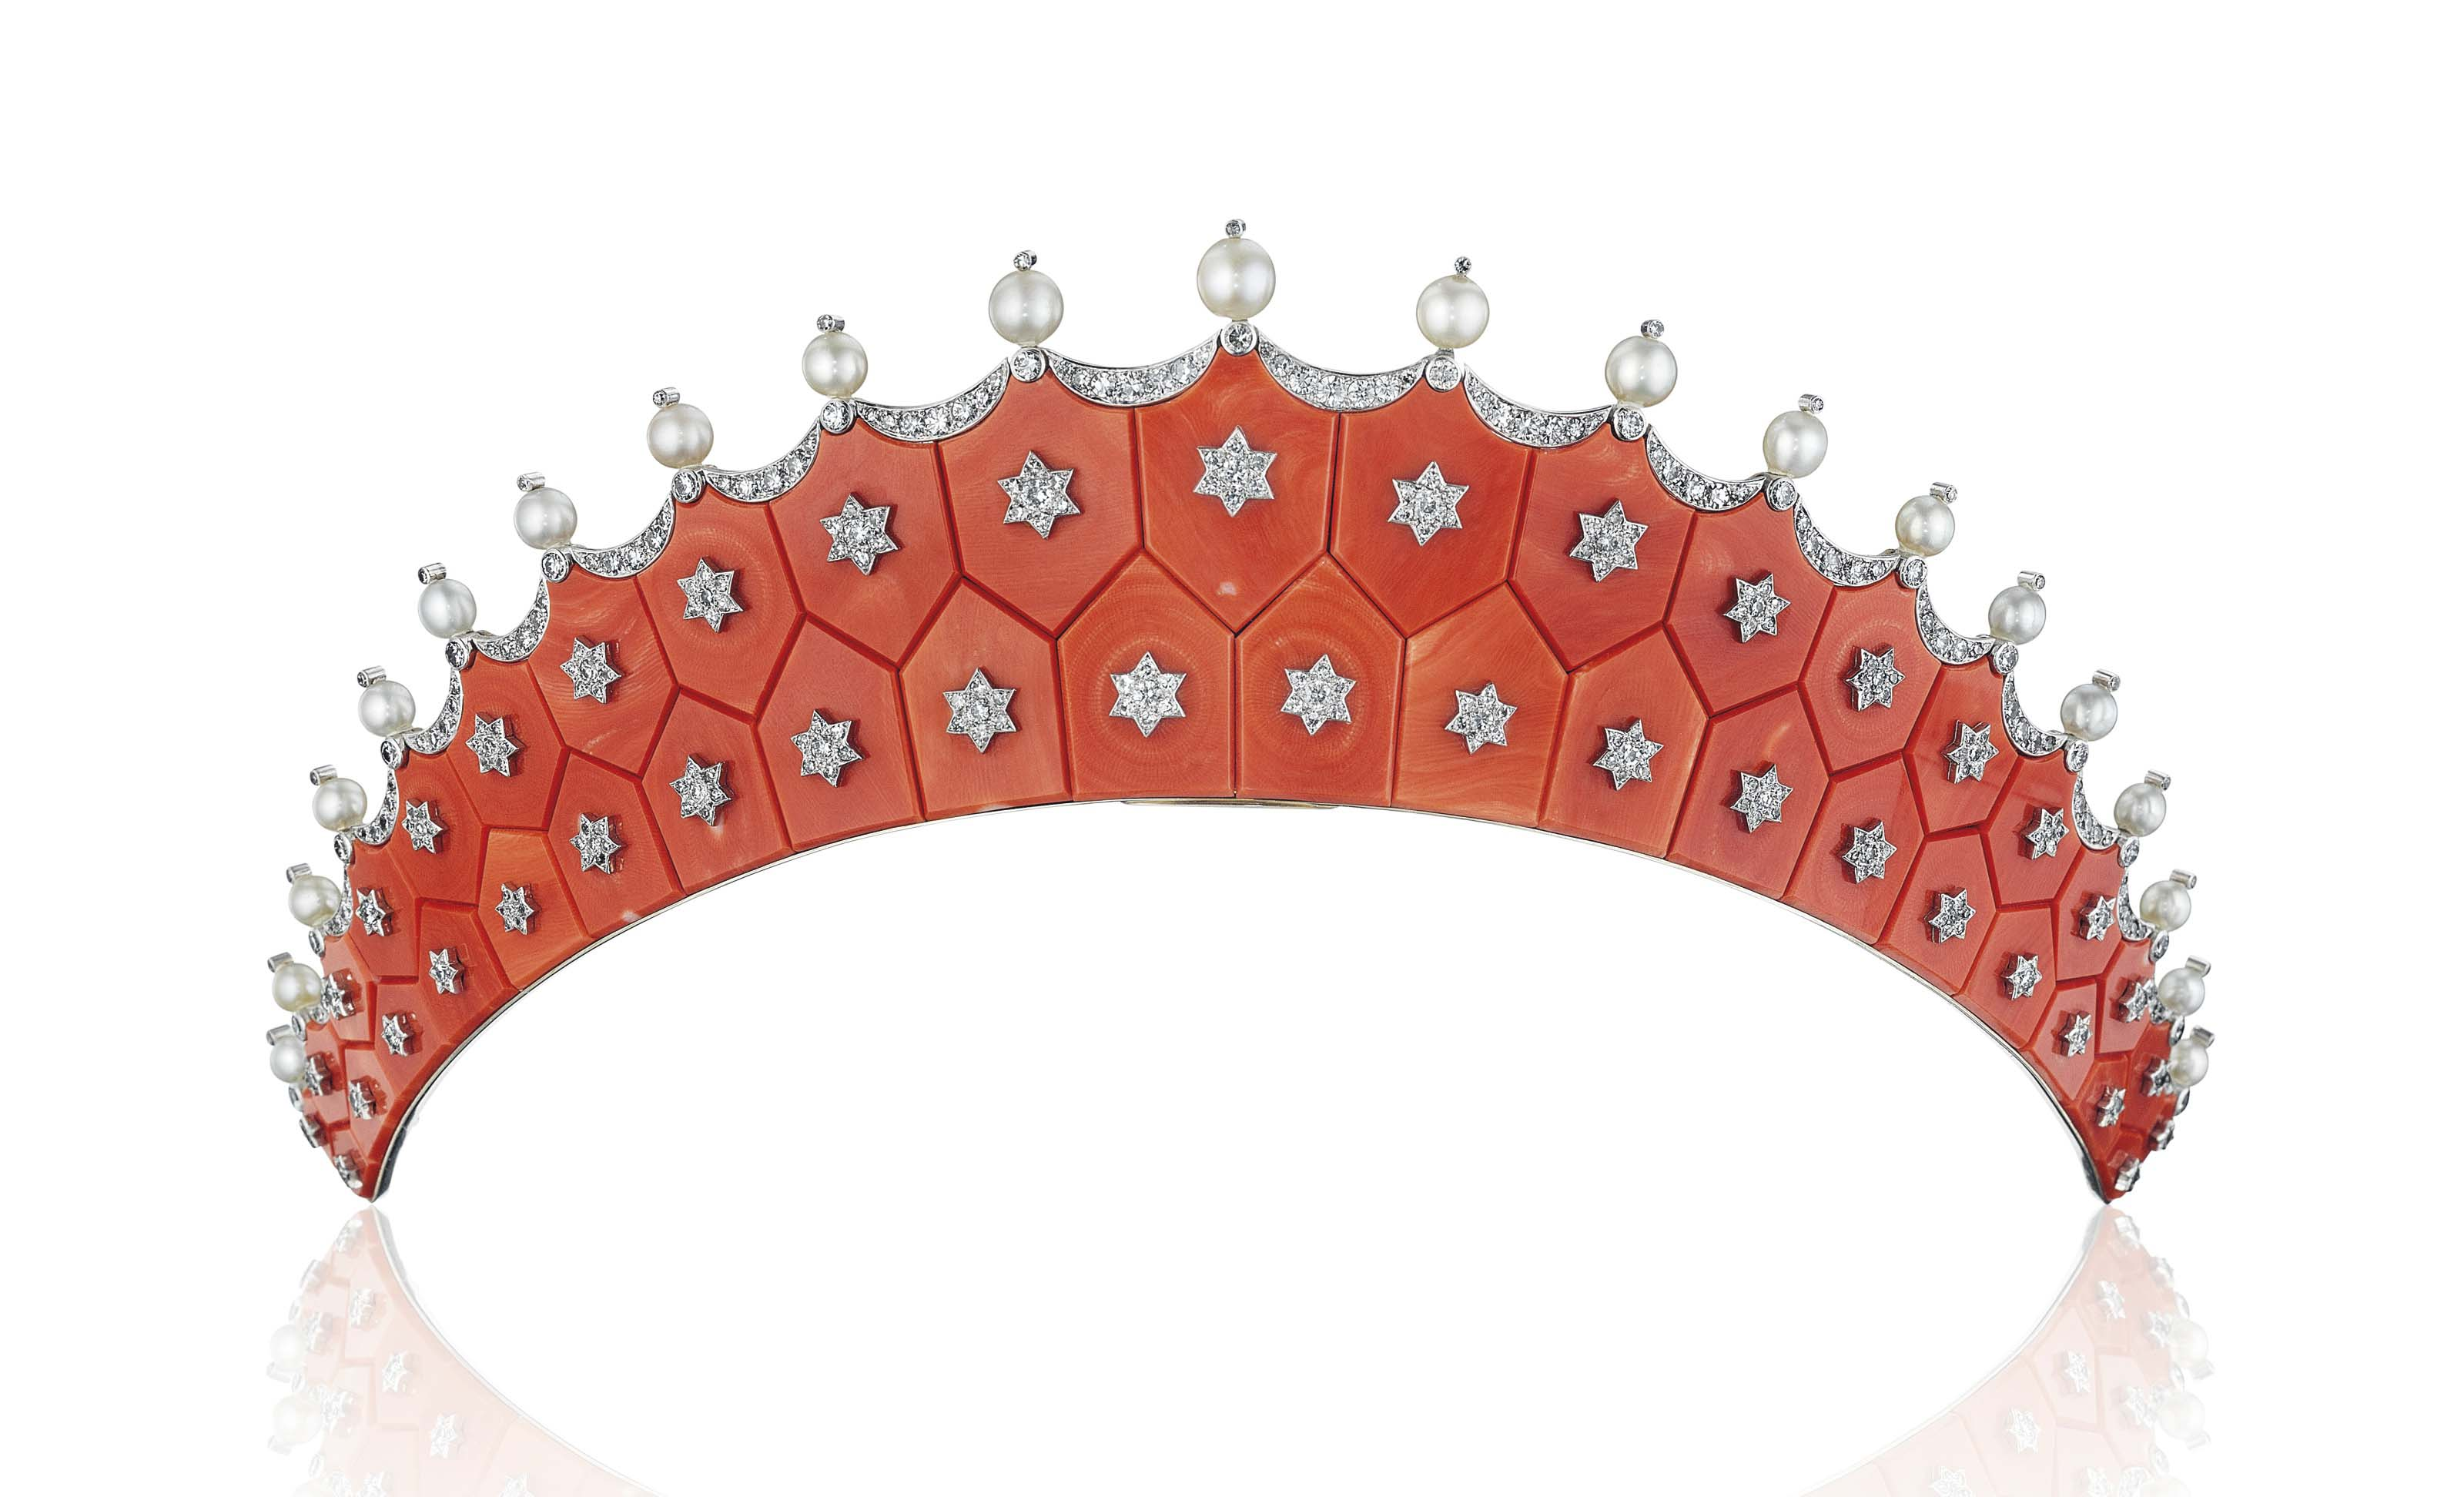 ~AN EXQUISITE CORAL, DIAMOND AND PEARL TIARA, BY CARTIER